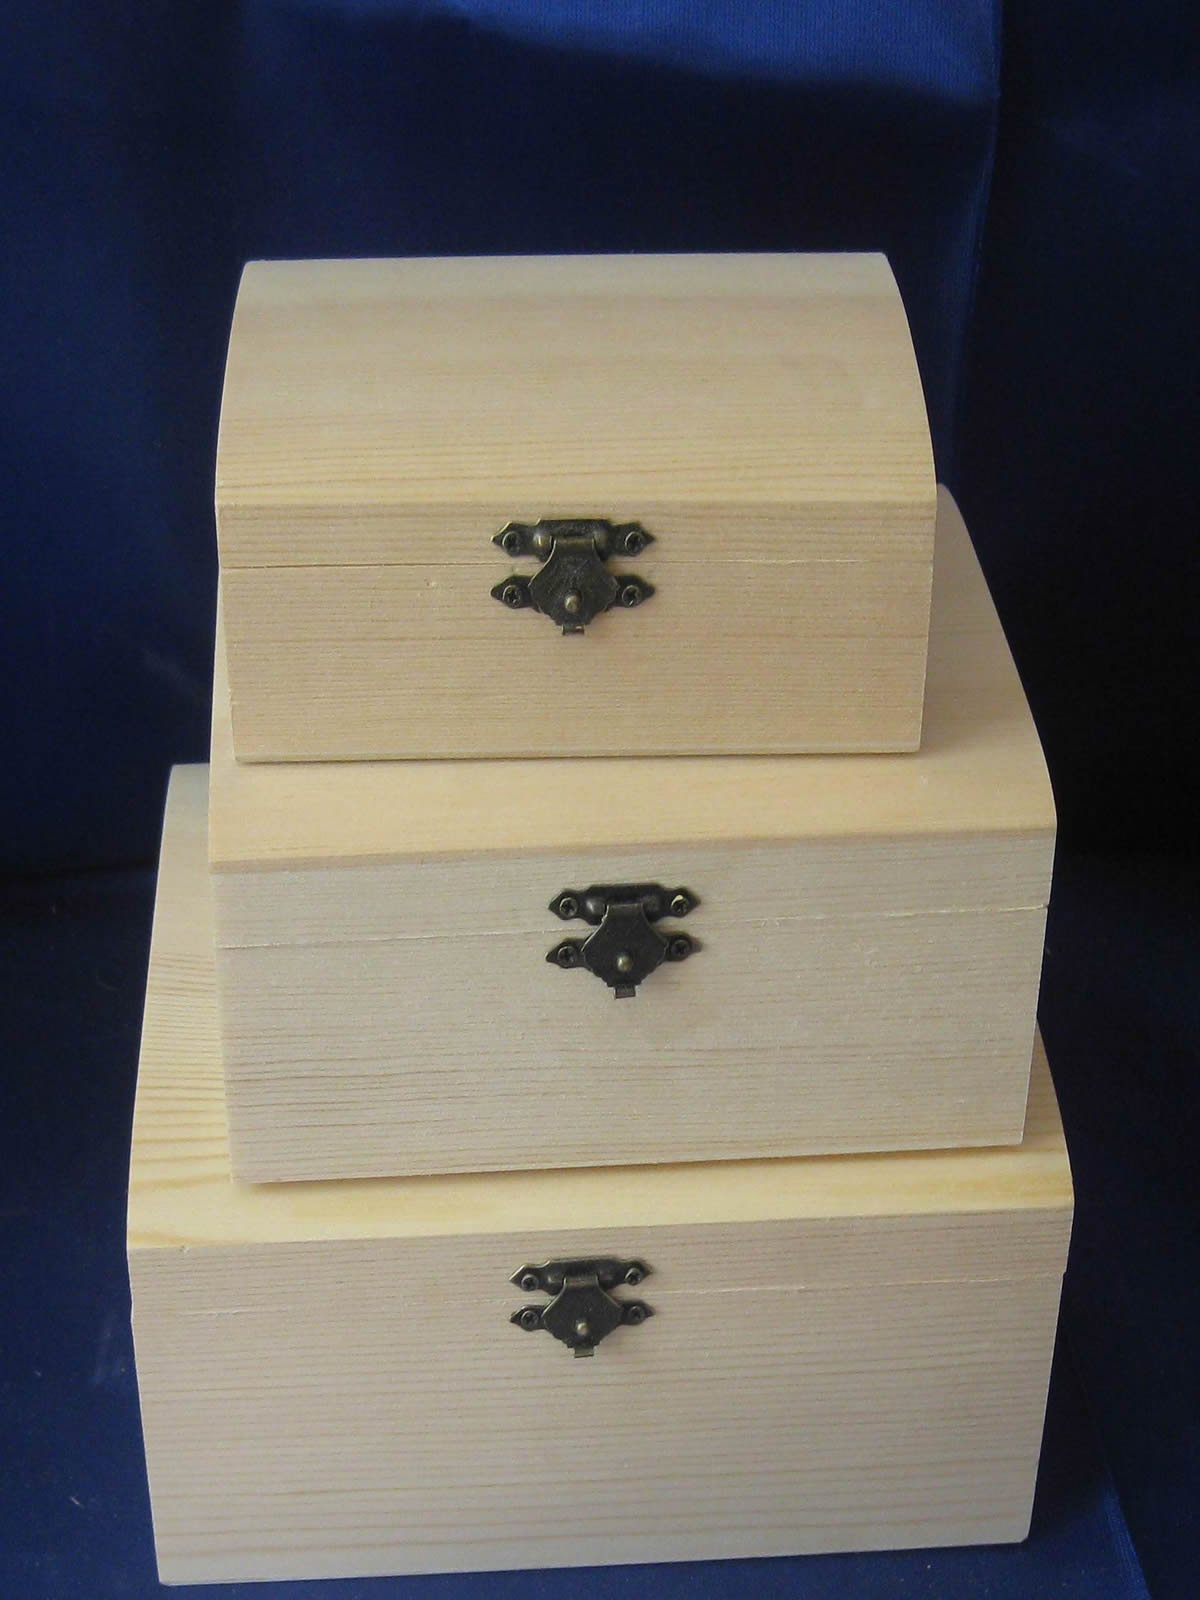 Walmart Gift Boxes,Decorating Small Jewelery Box - Buy Decorating ...